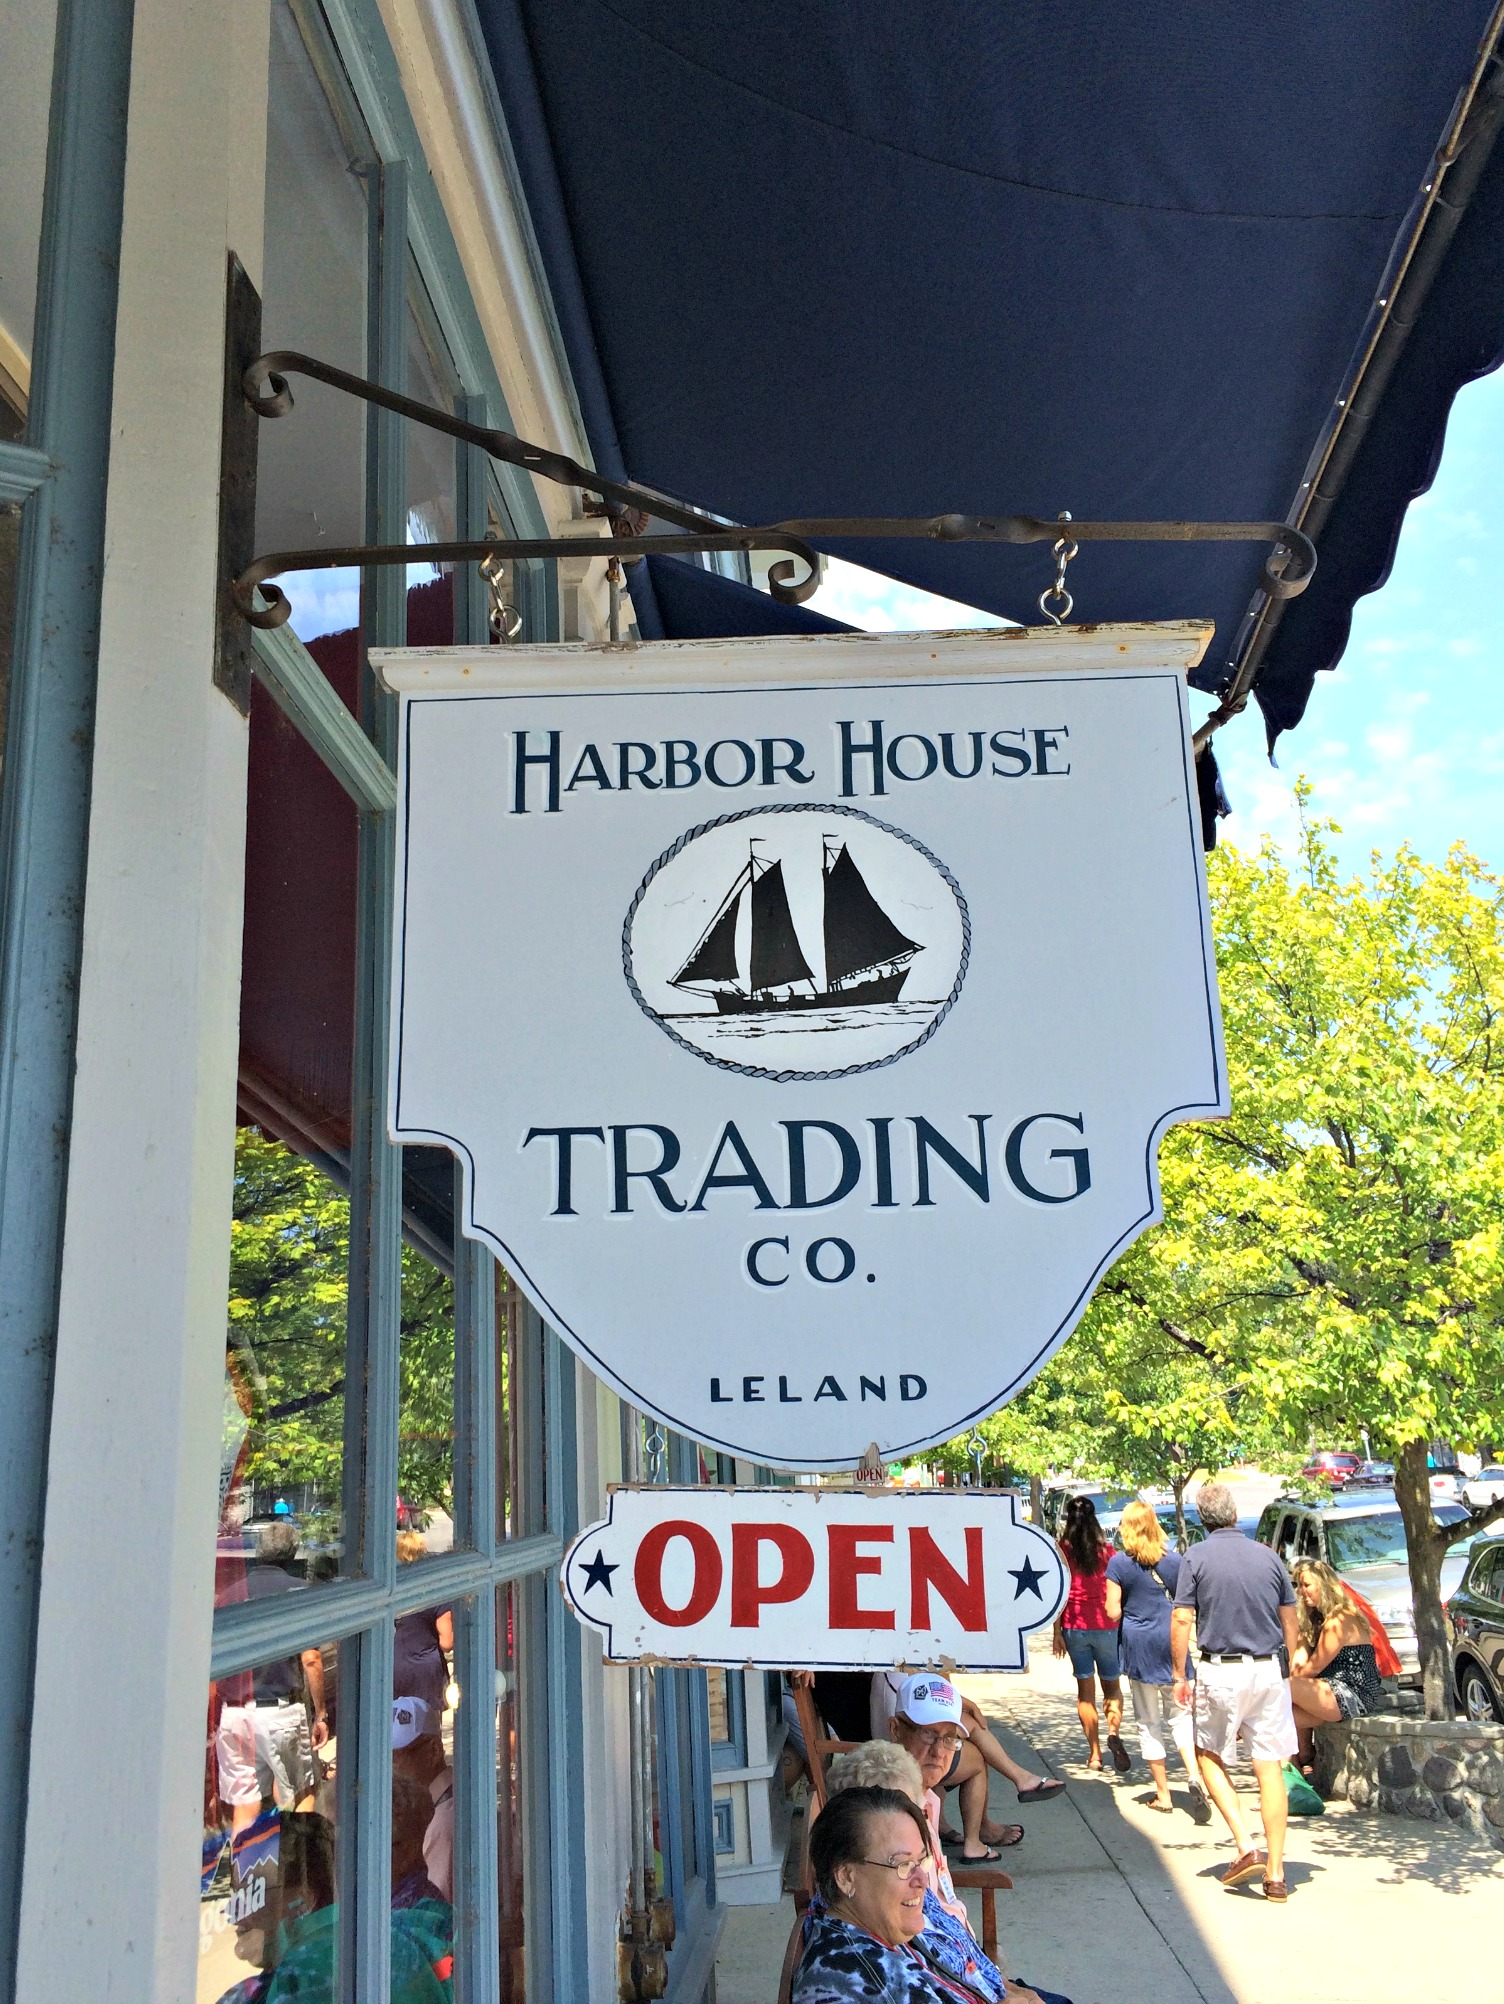 harbor bouse trading co. leland, mi